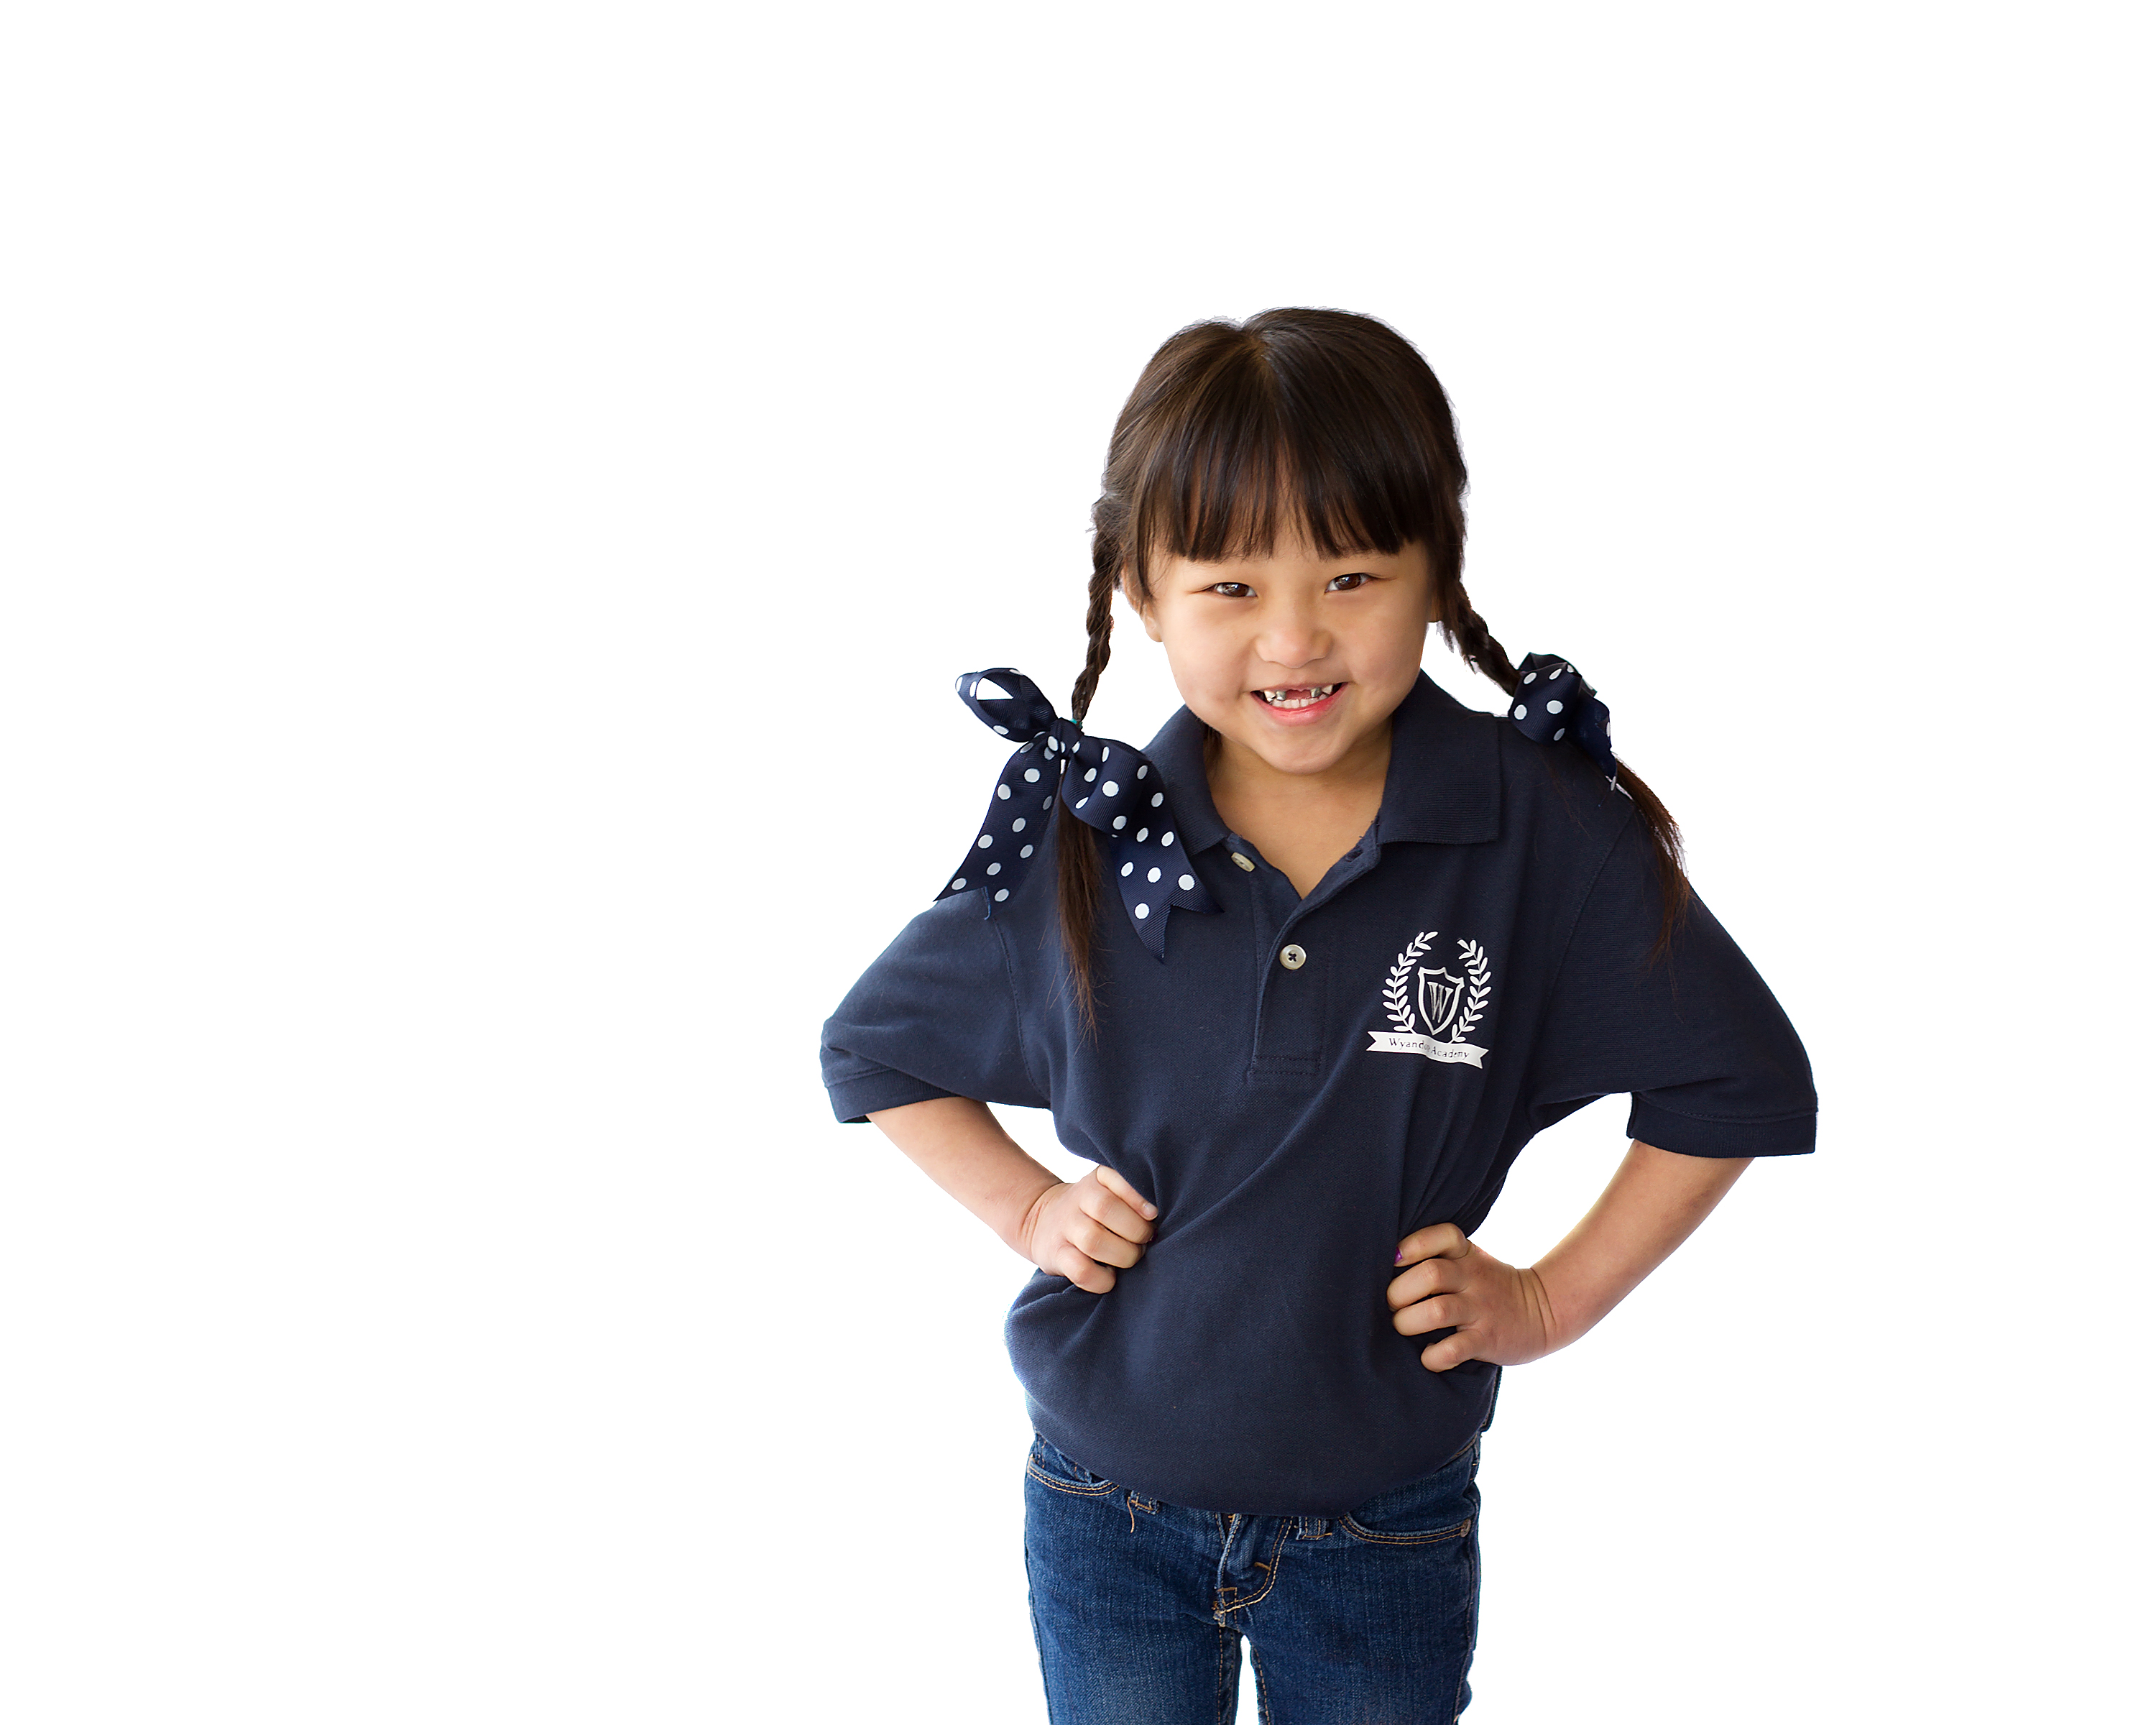 Student with Wyandotte Academy Polo Shirt